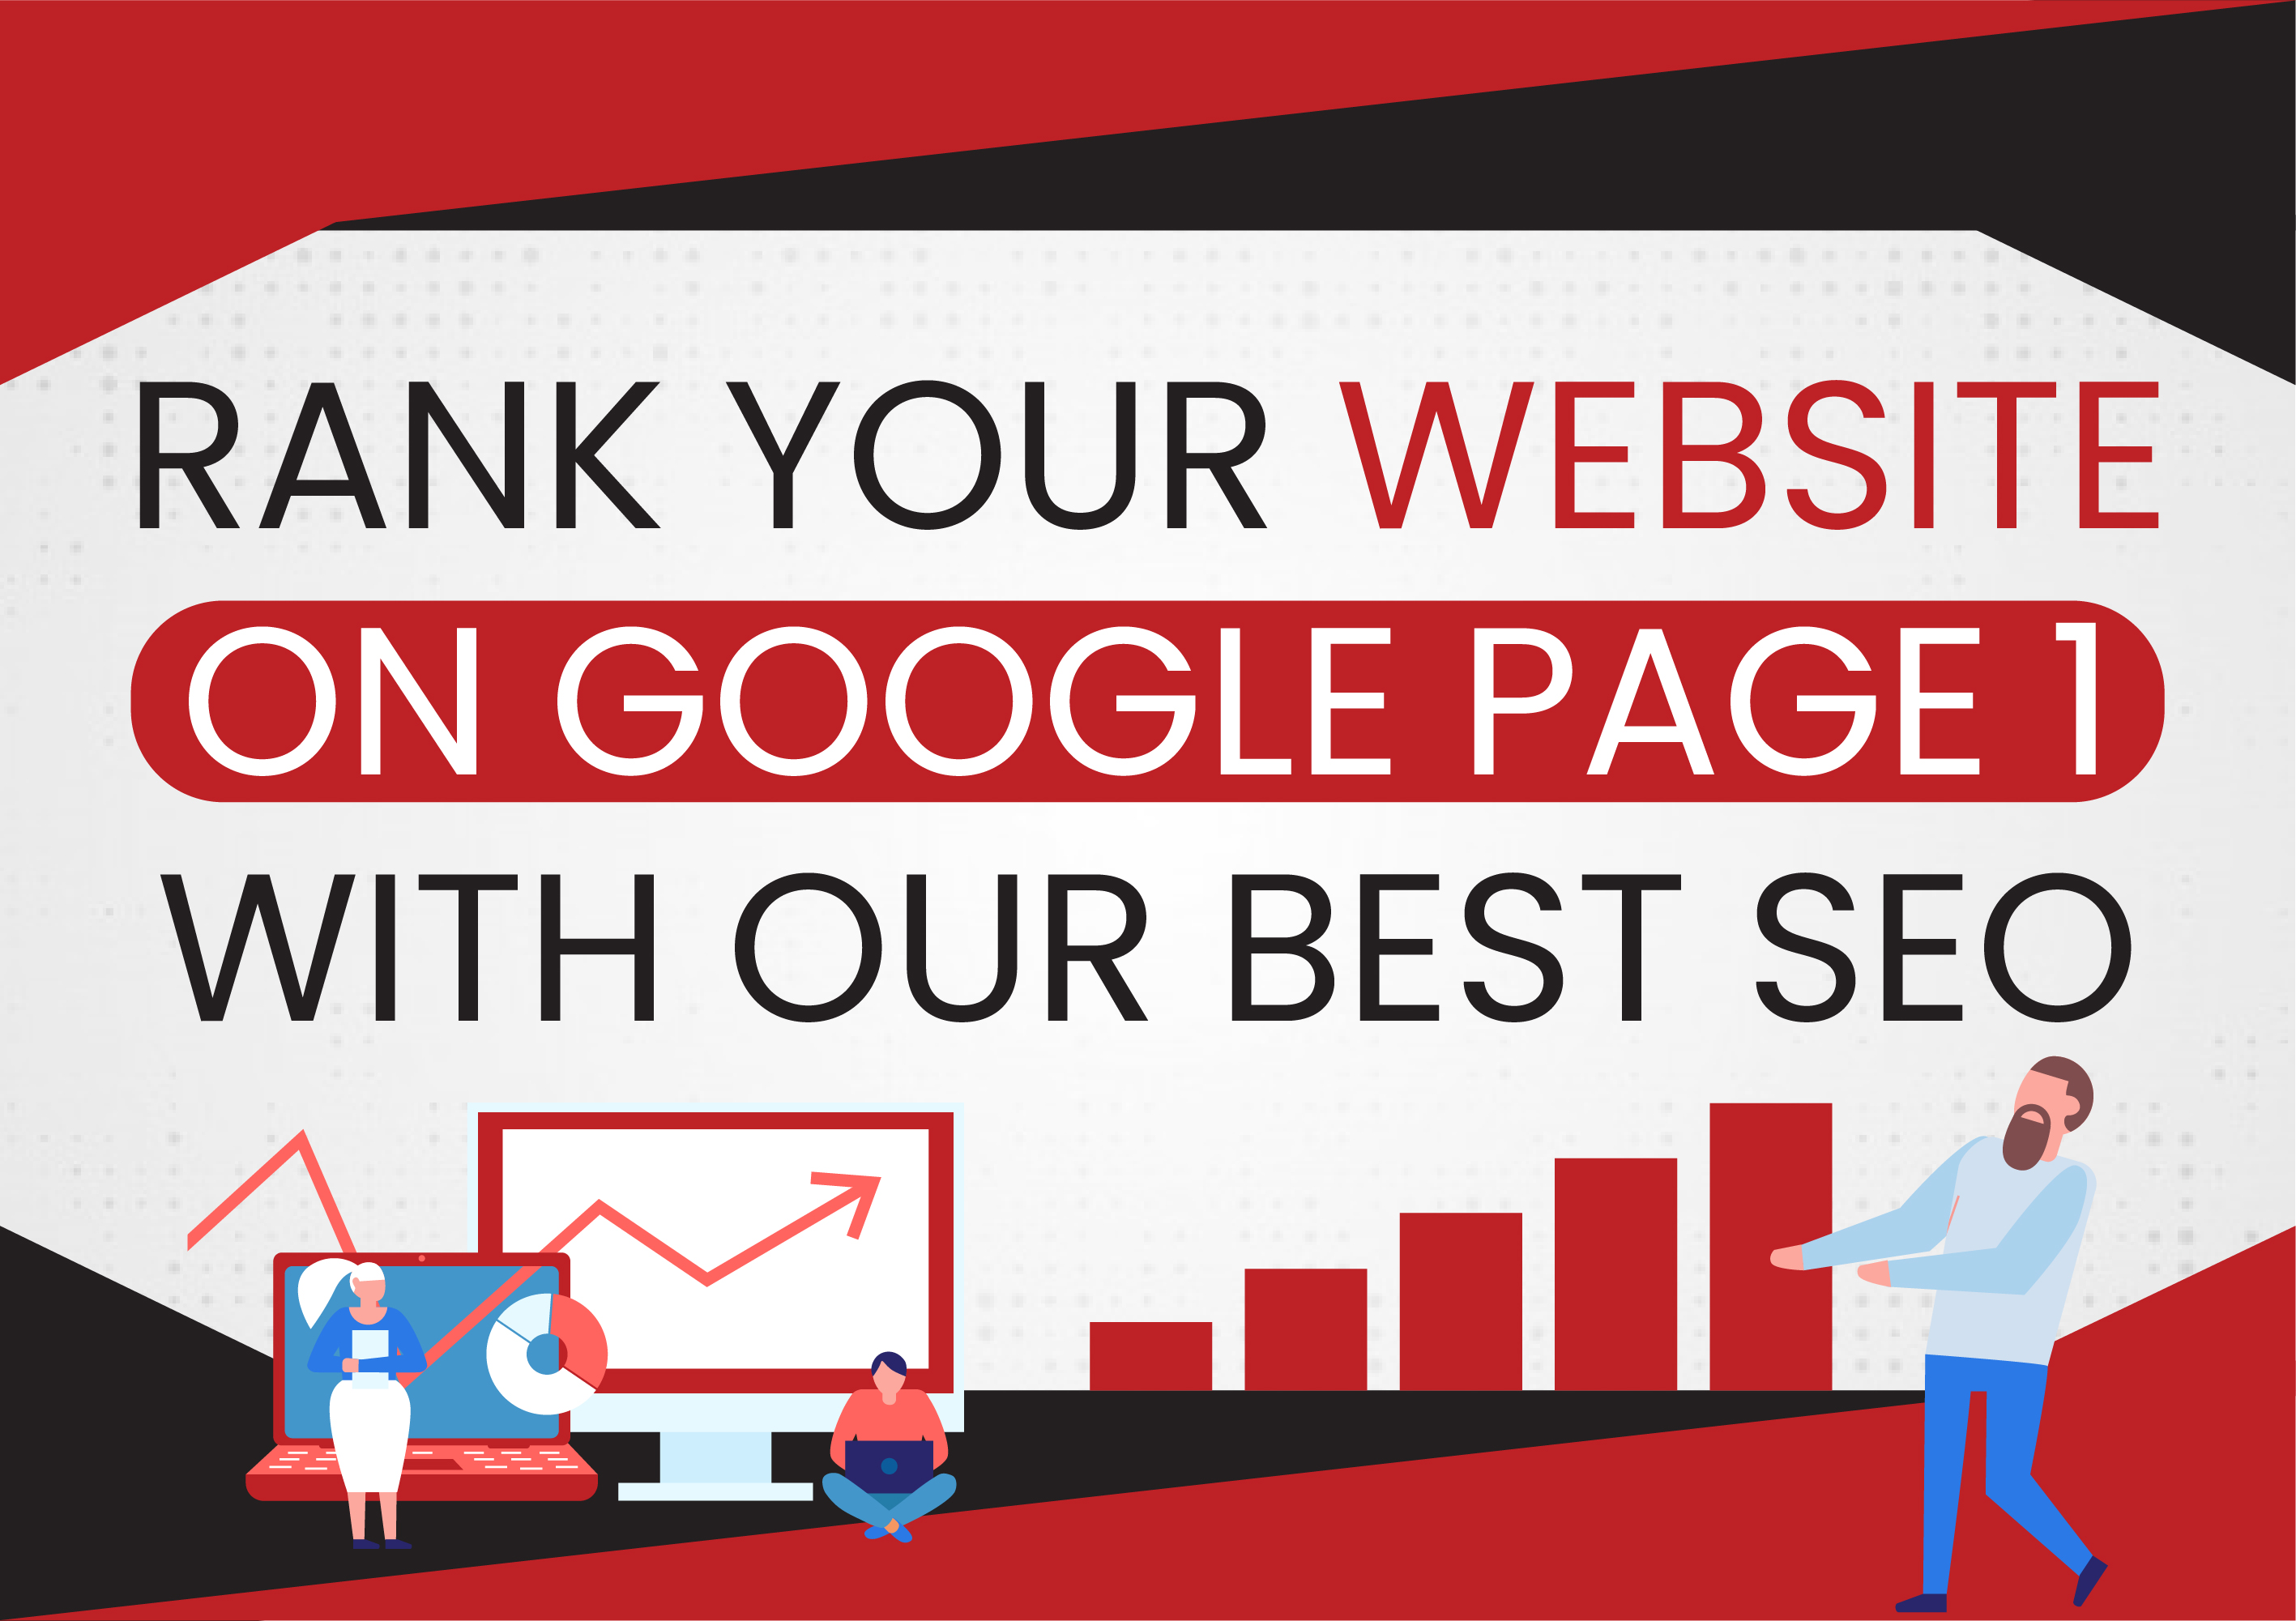 Rank your Website on Google Page 1 with Our Best SEO